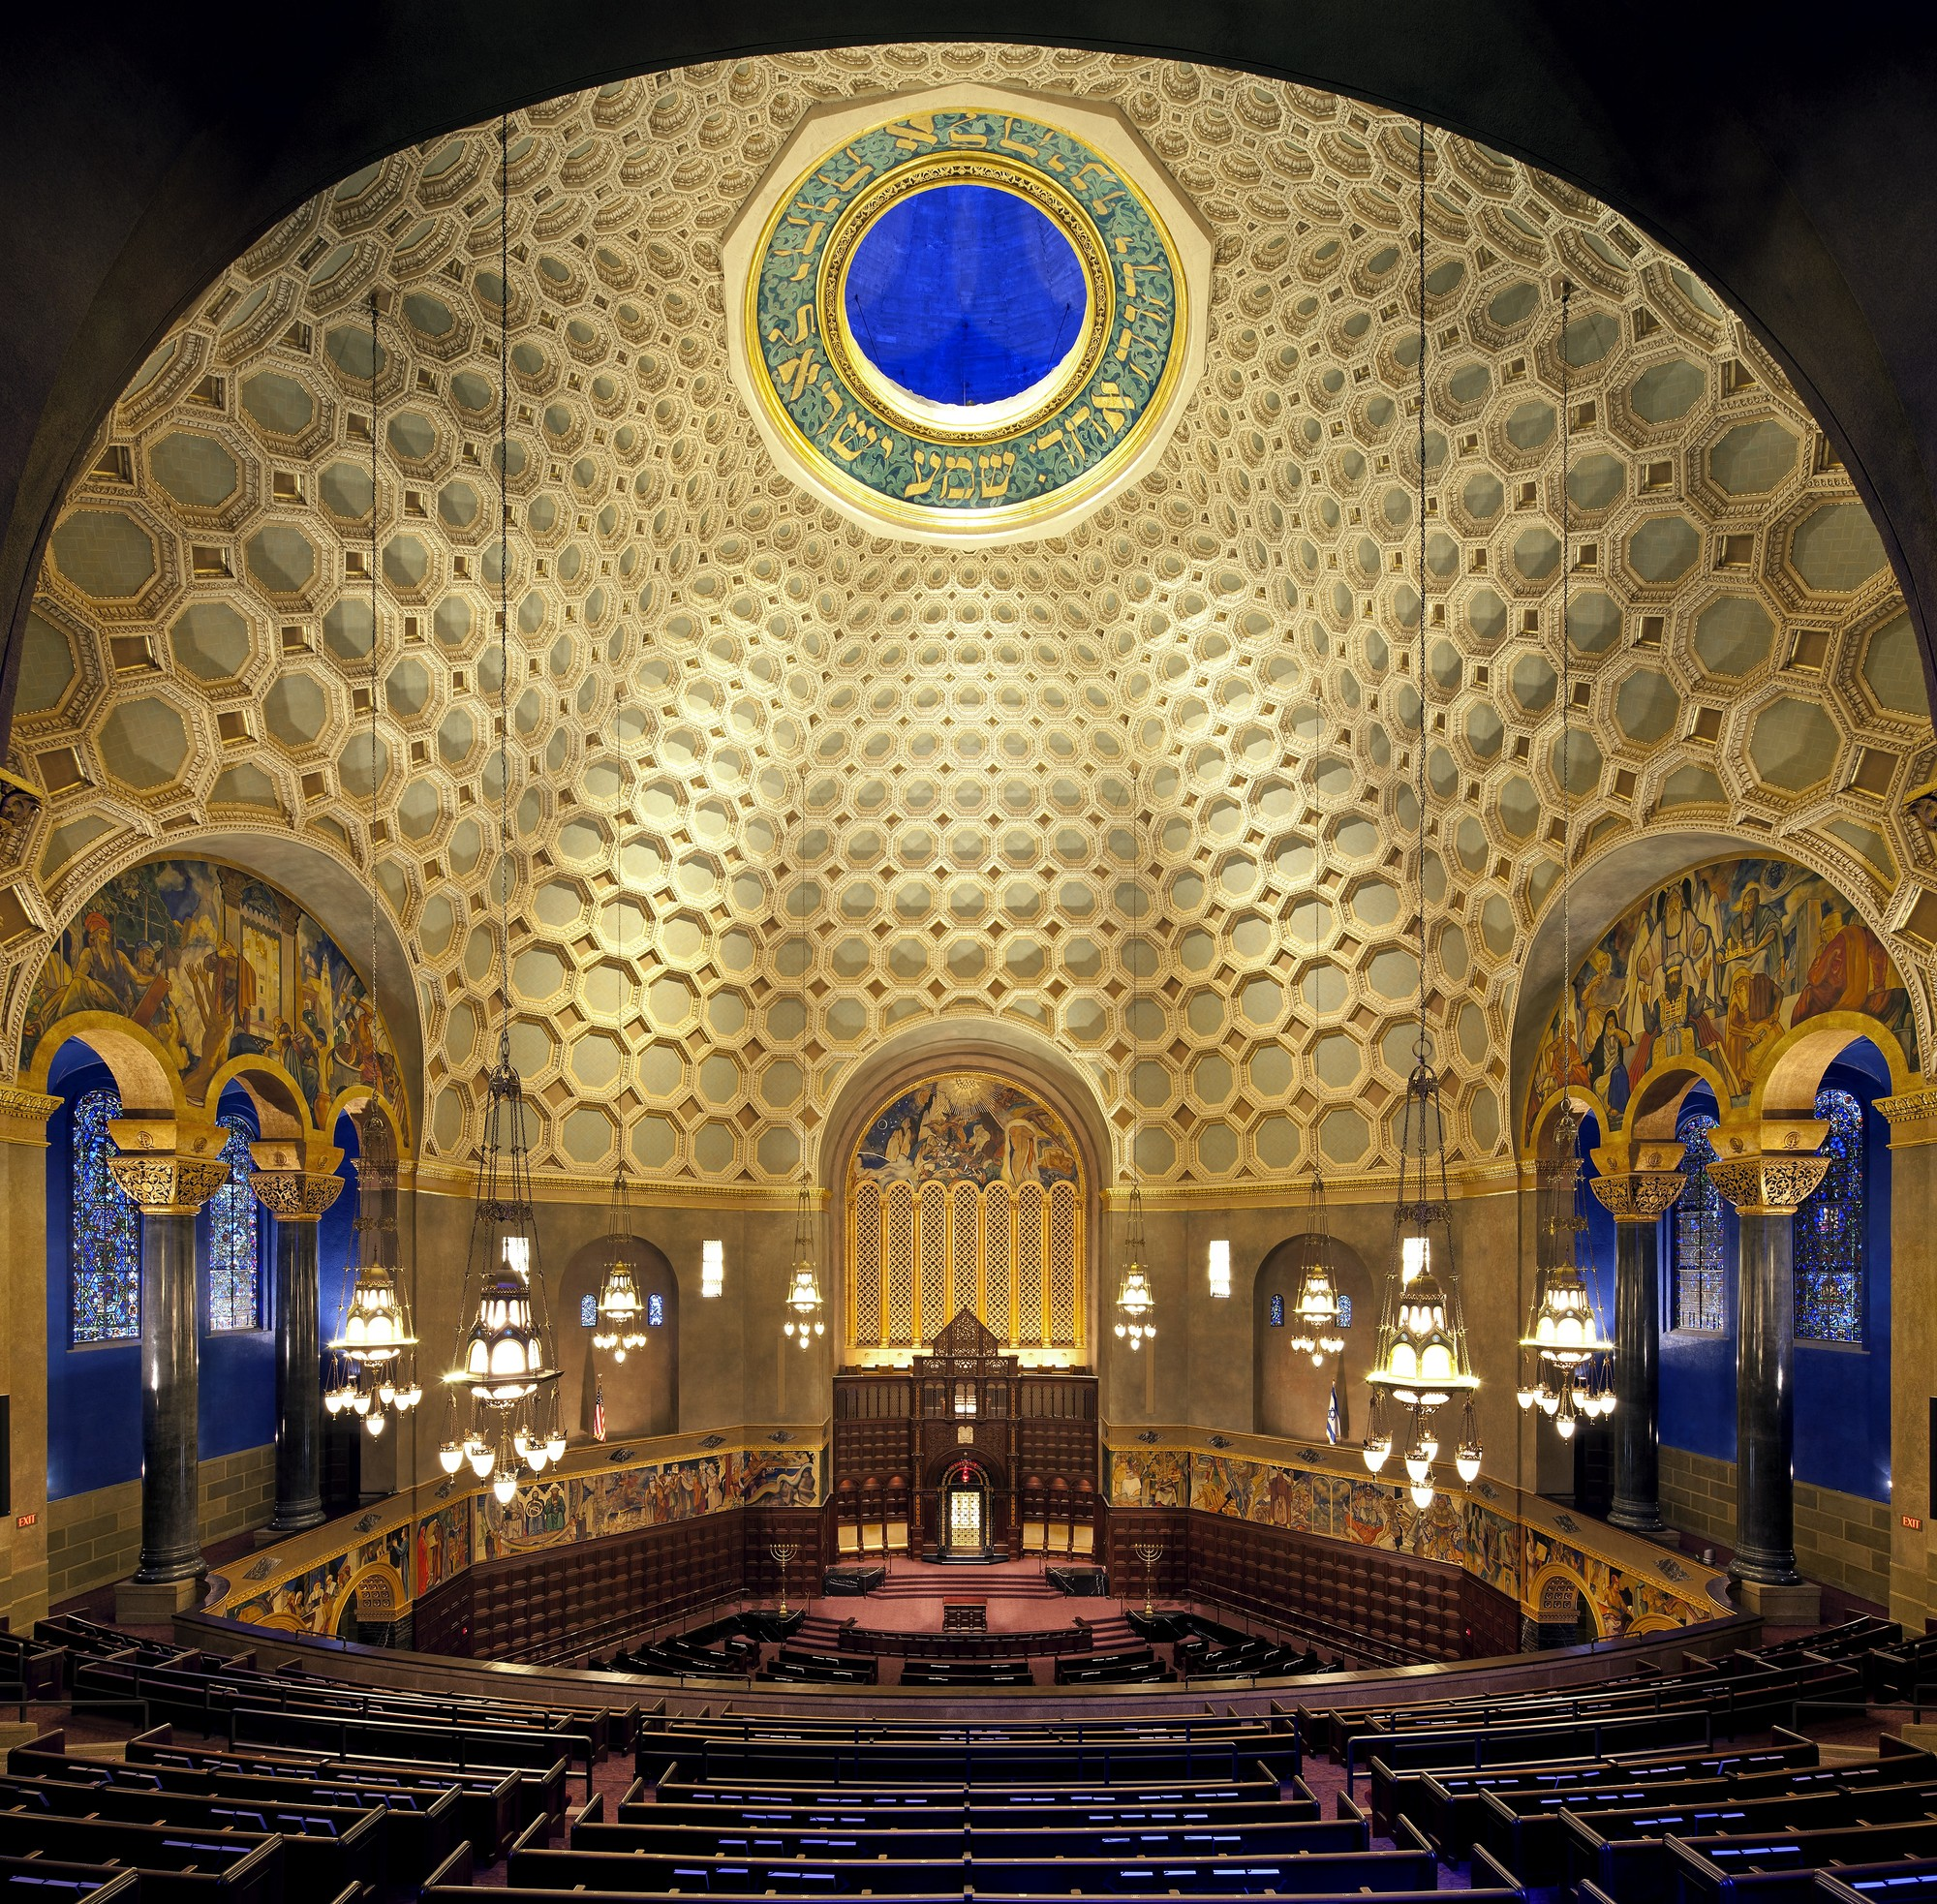 Wilshire Boulevard Temple. Image Courtesy of Levin & Associates Architecture